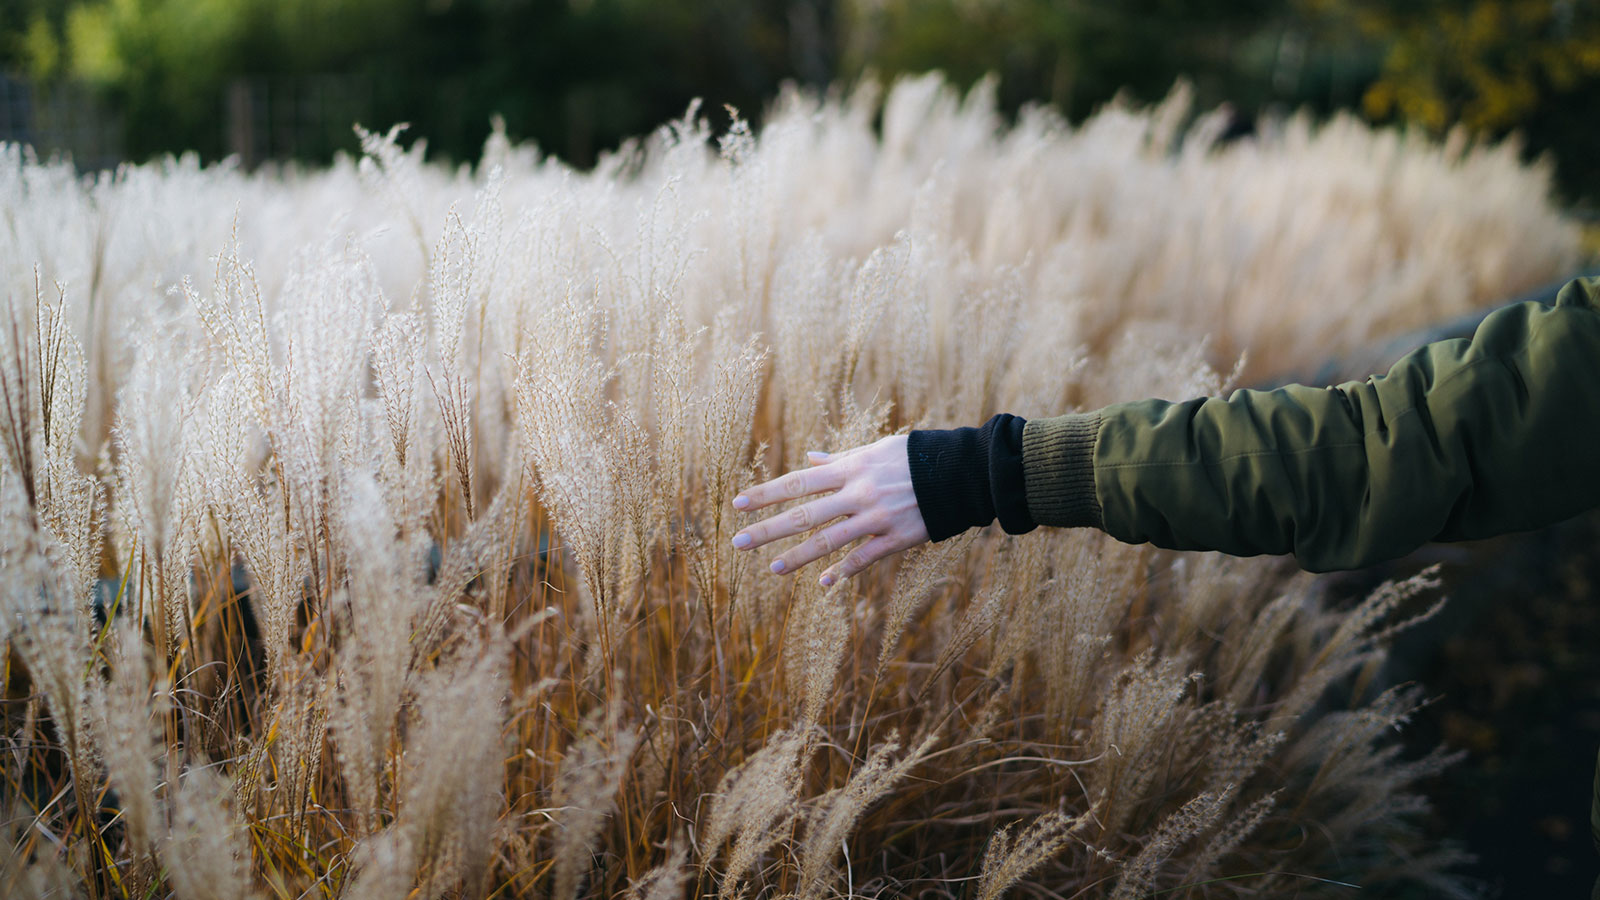 Hand brushing wheat in a field